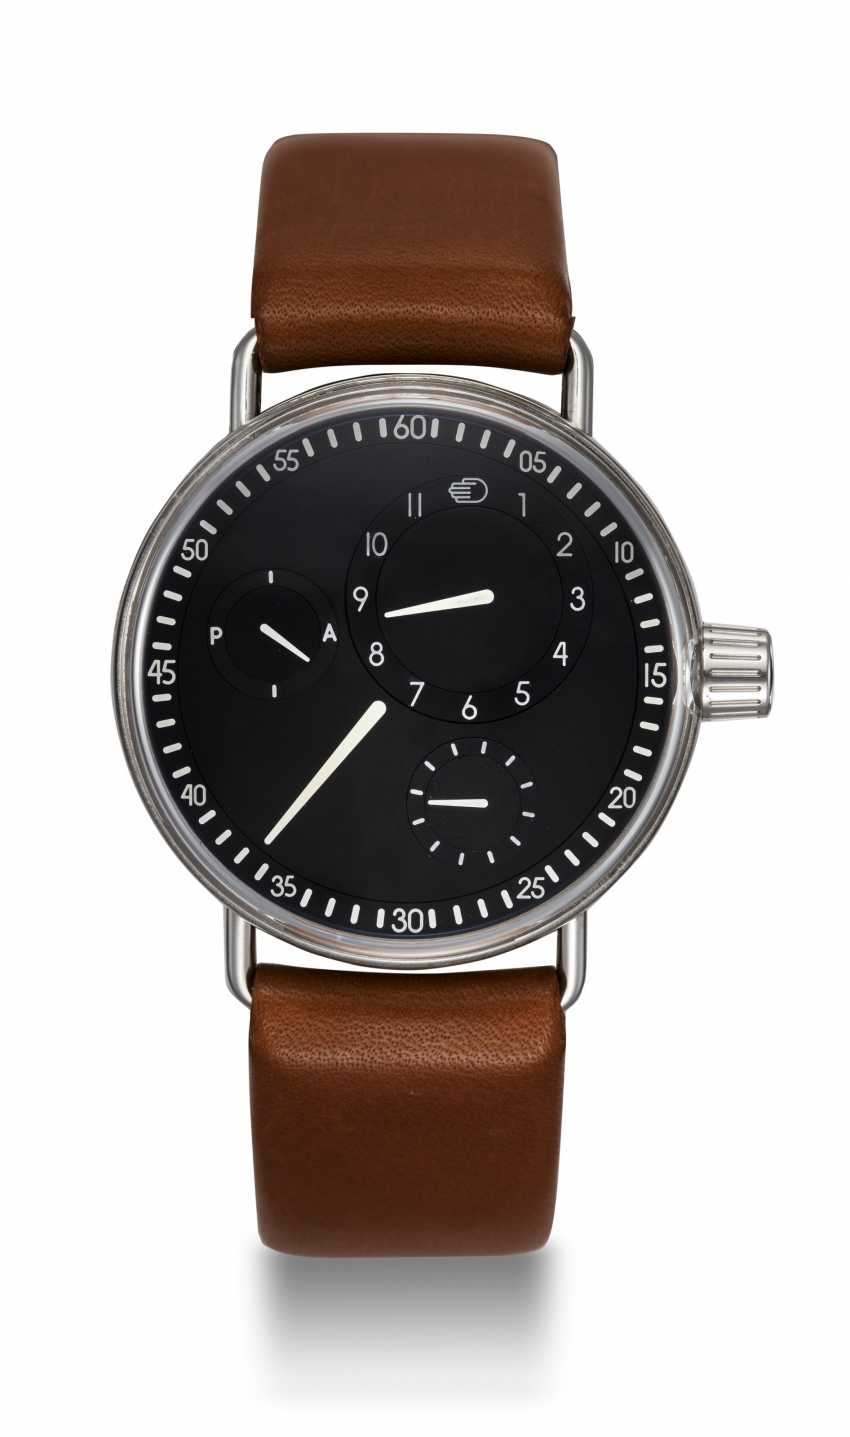 RESSENCE, A LIMITED EDITON STAINLESS STEEL SERIES ONE WRISTWATCH, TYPE 1001, 77/150 - photo 3